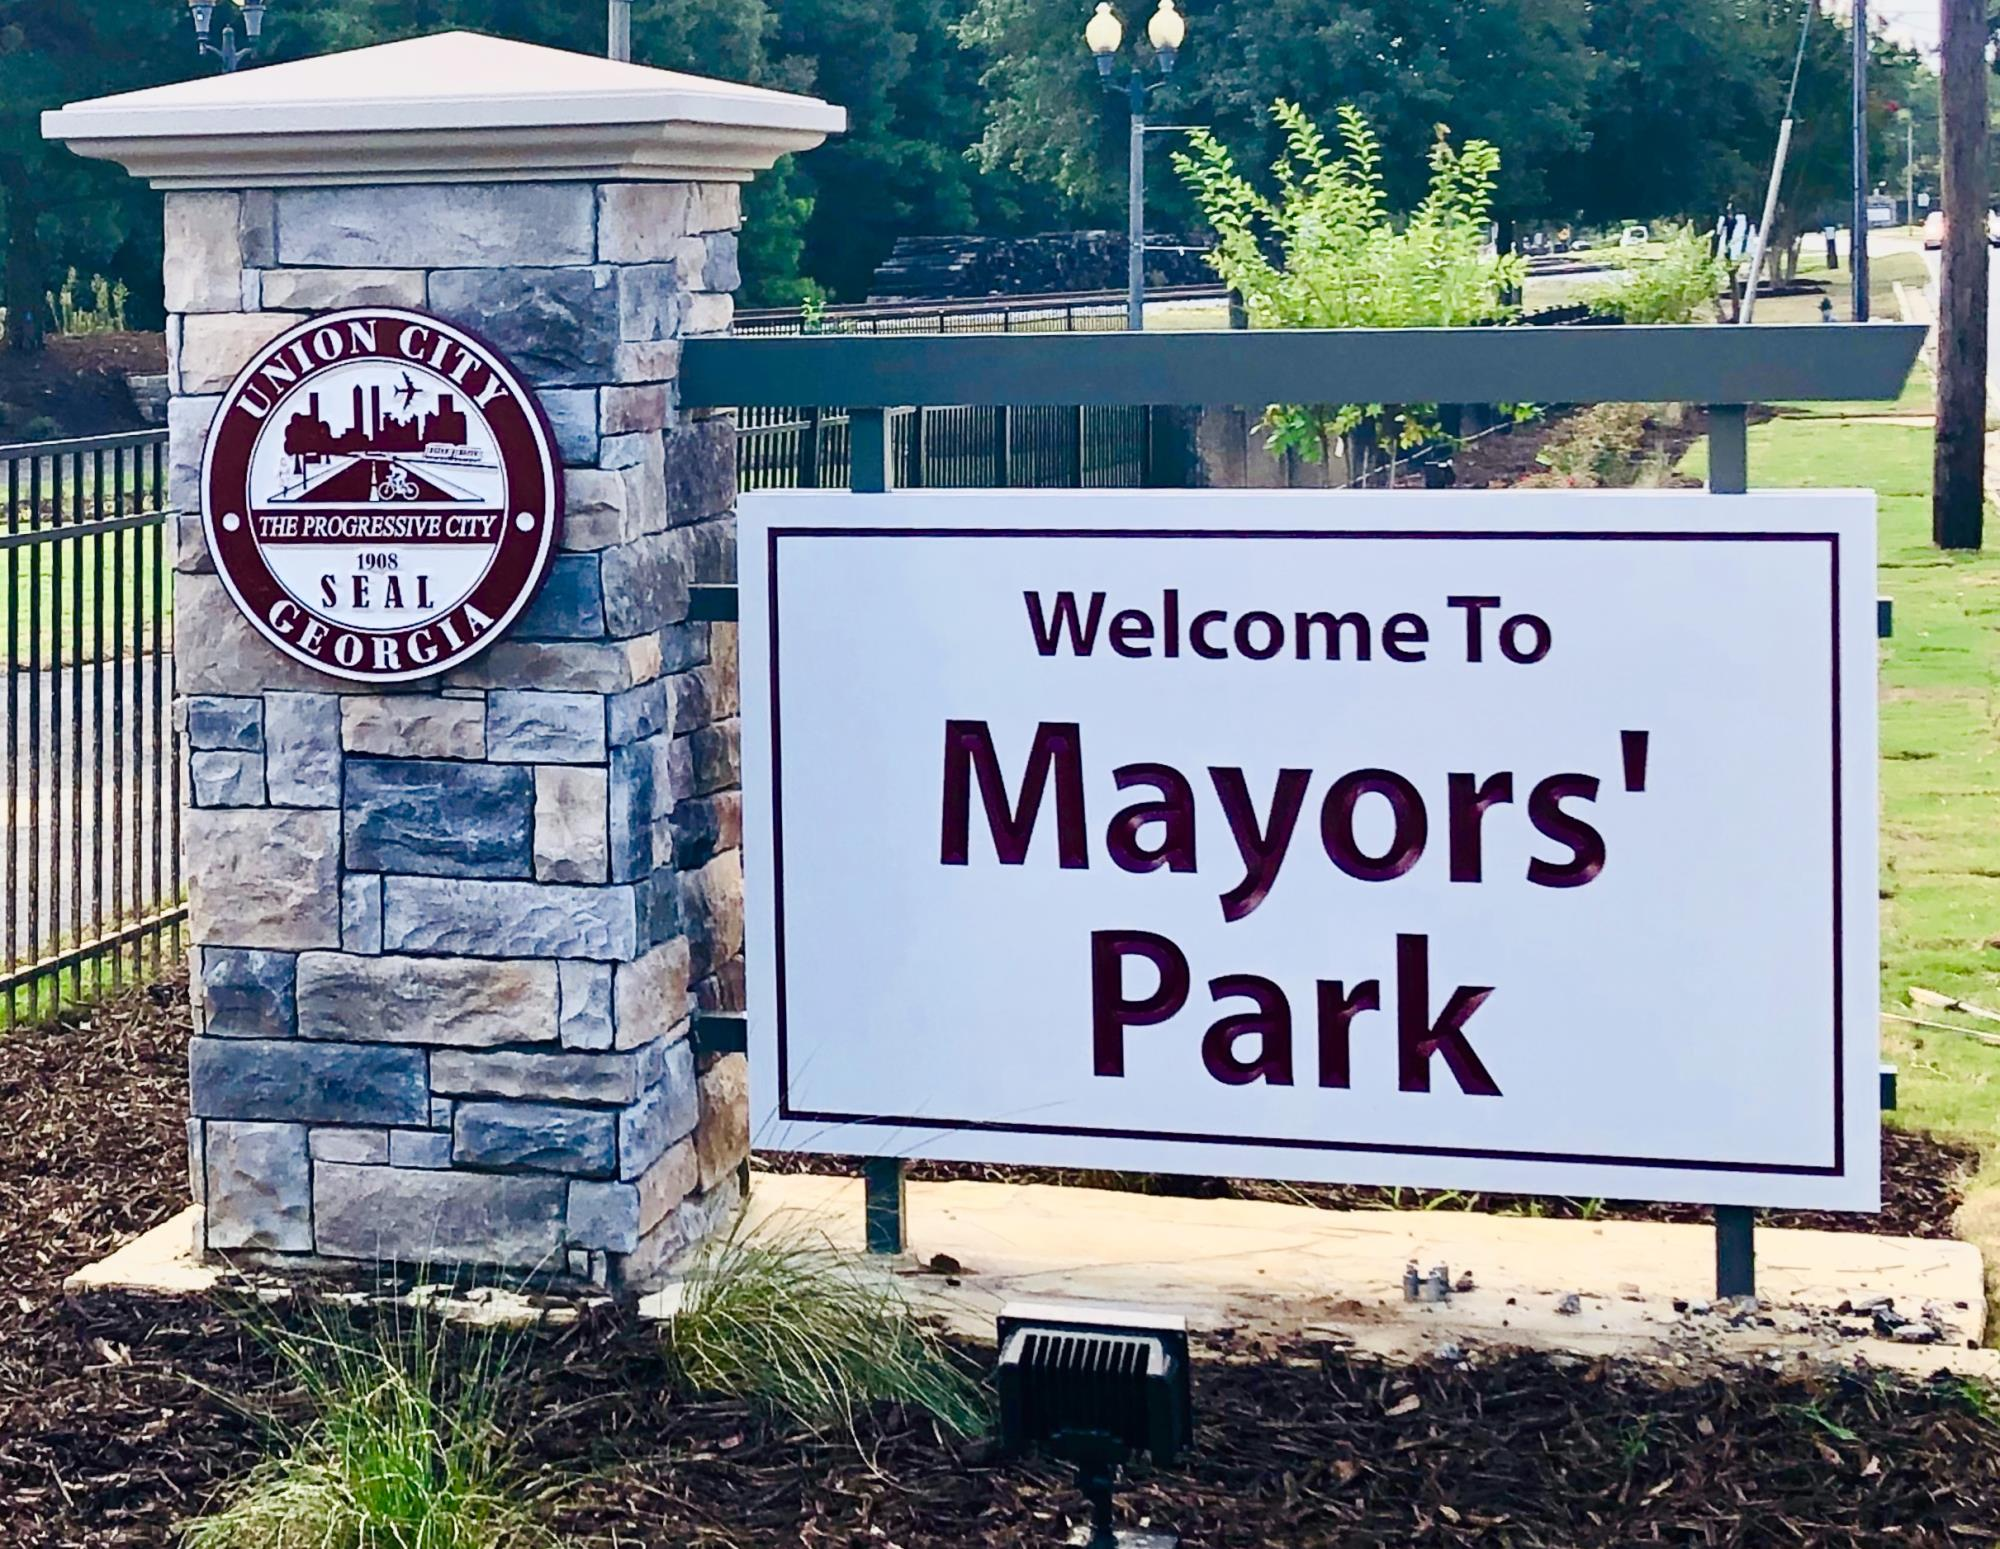 UNION CITY CELEBRATES GRAND  RE-OPENING OF MAYORS' PARK